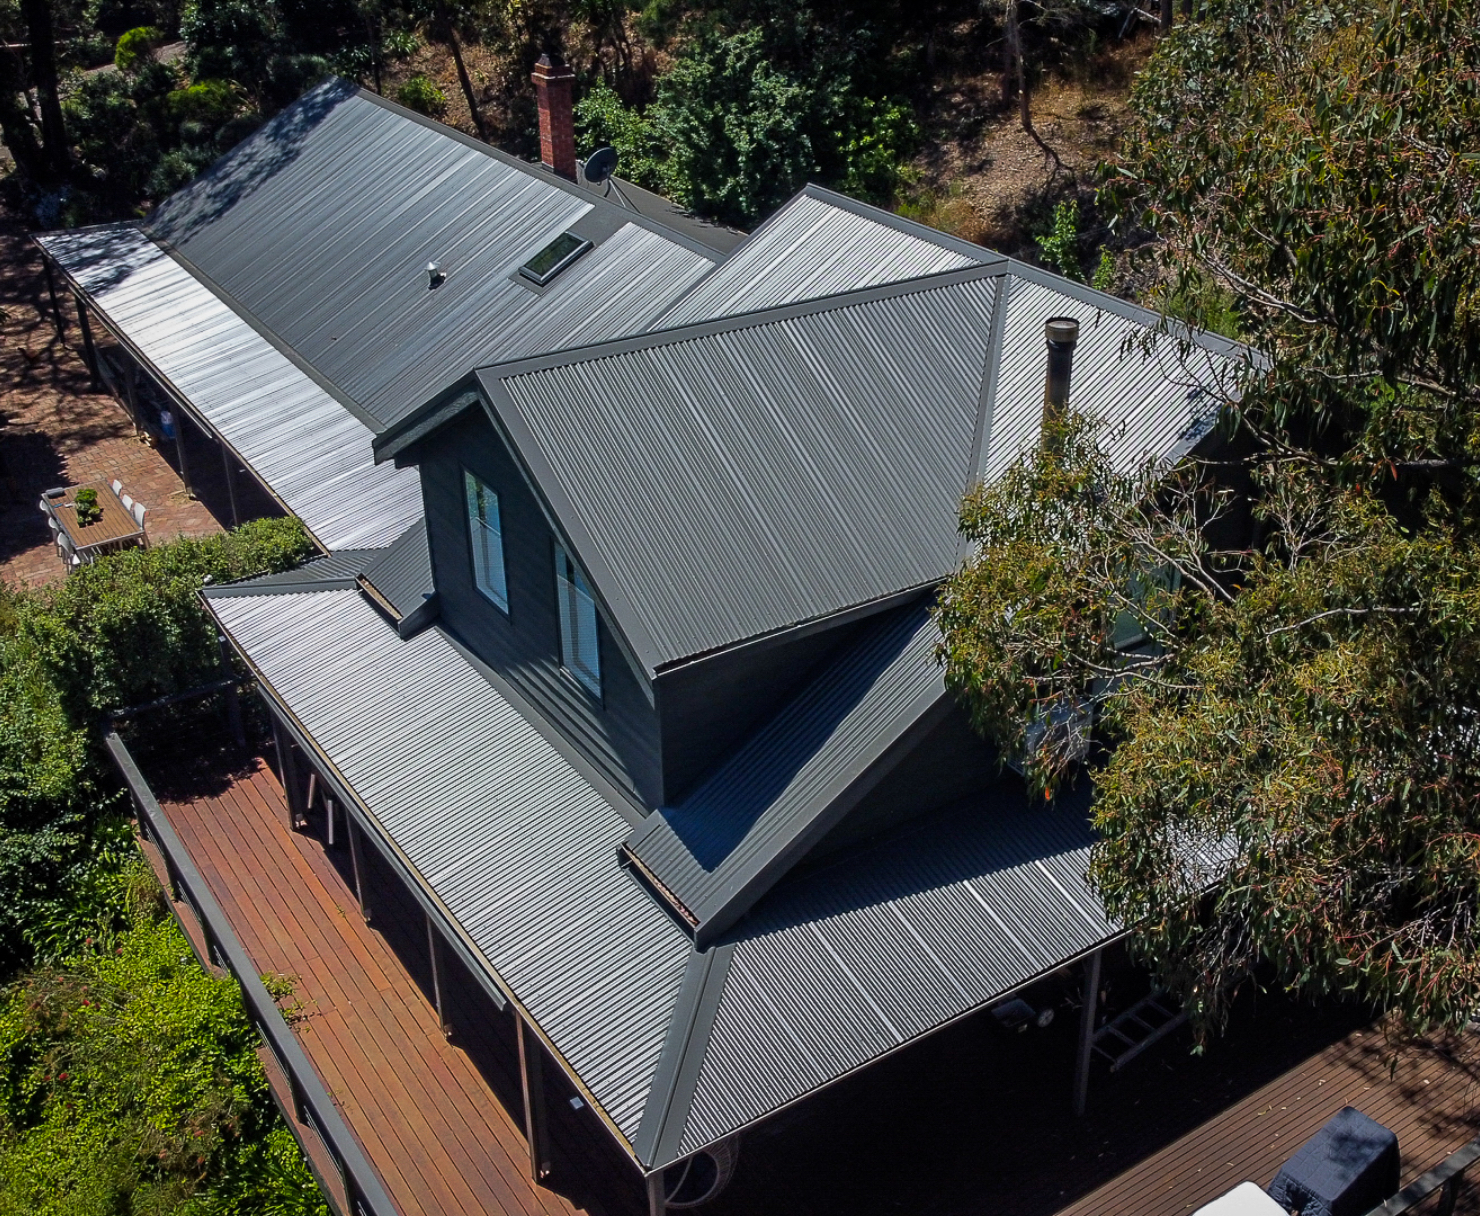 New roof installation at a home in Warrandyte, Victoria.